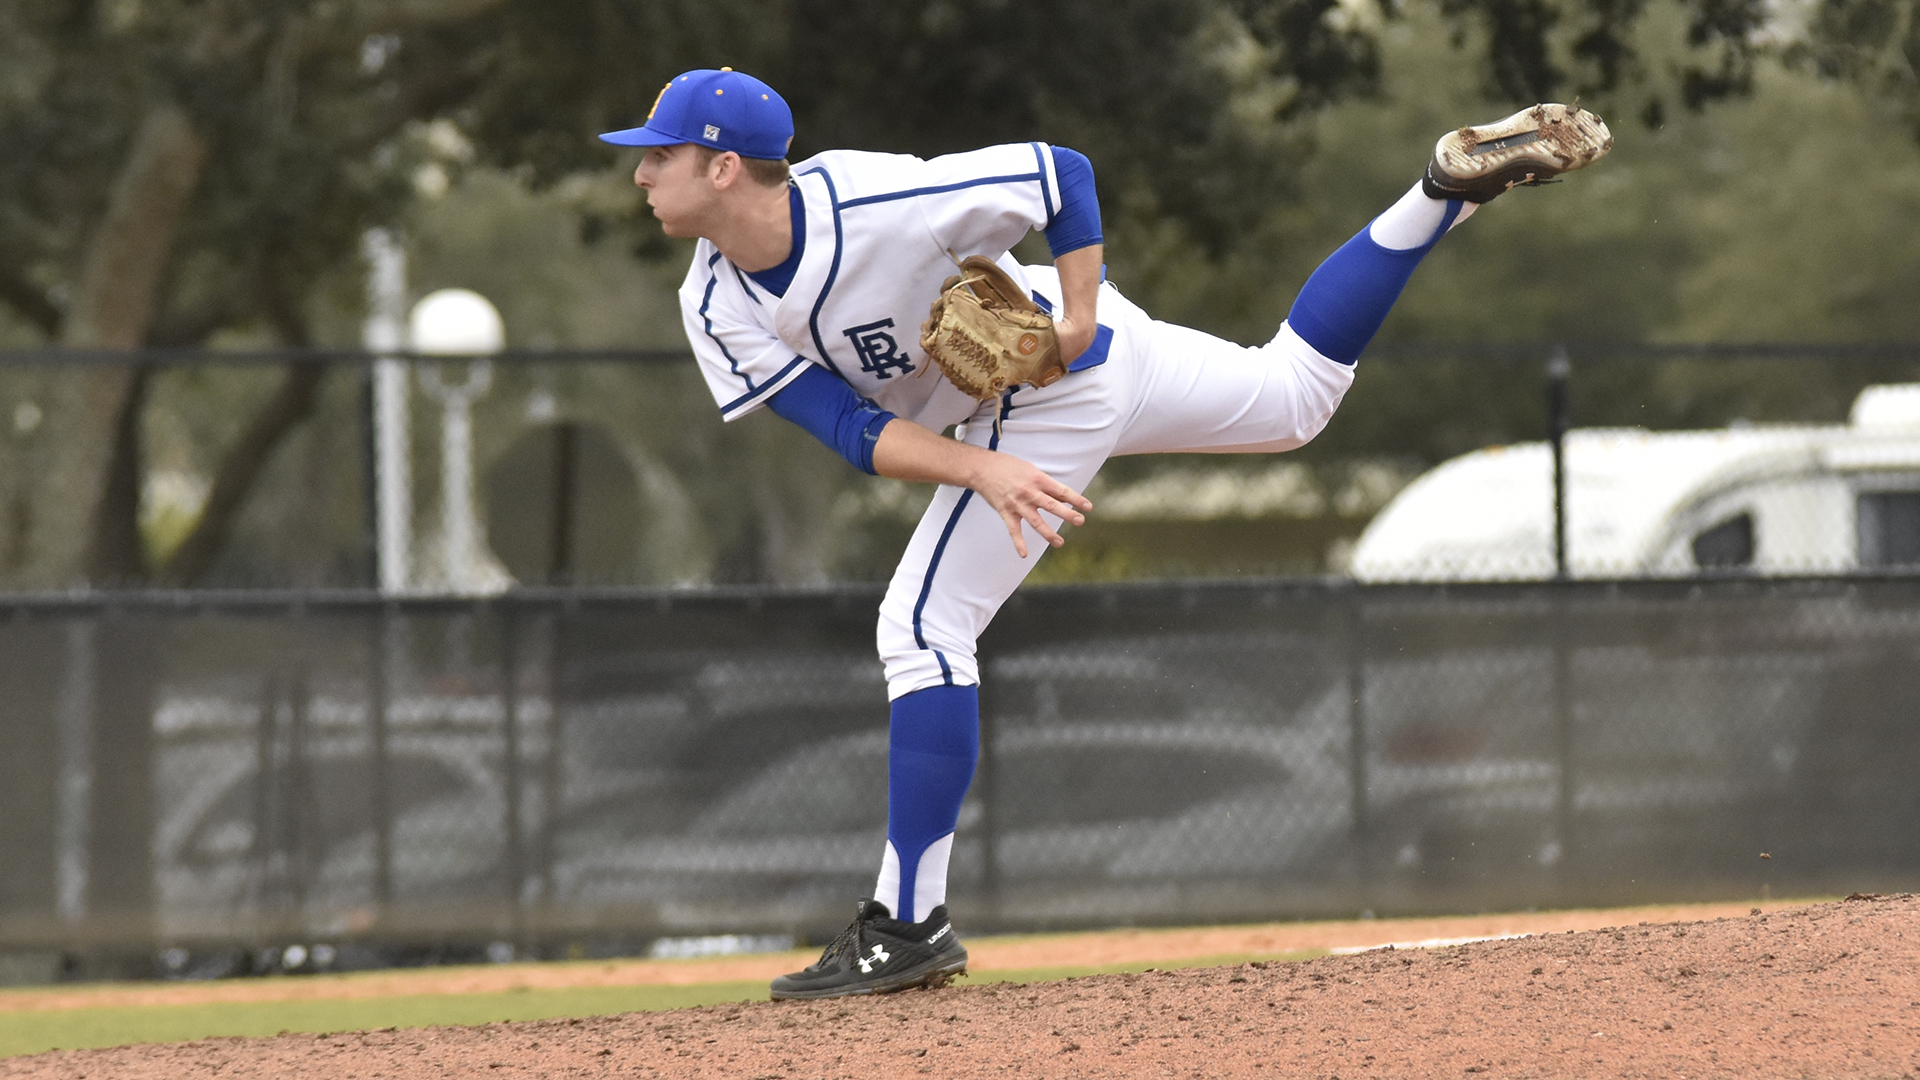 Nanaimo Pirates alum Garrett Goodall (Nanaimo, B.C.) hurled a two-hit shutout for Embry Riddle. Photo: ER Athletics